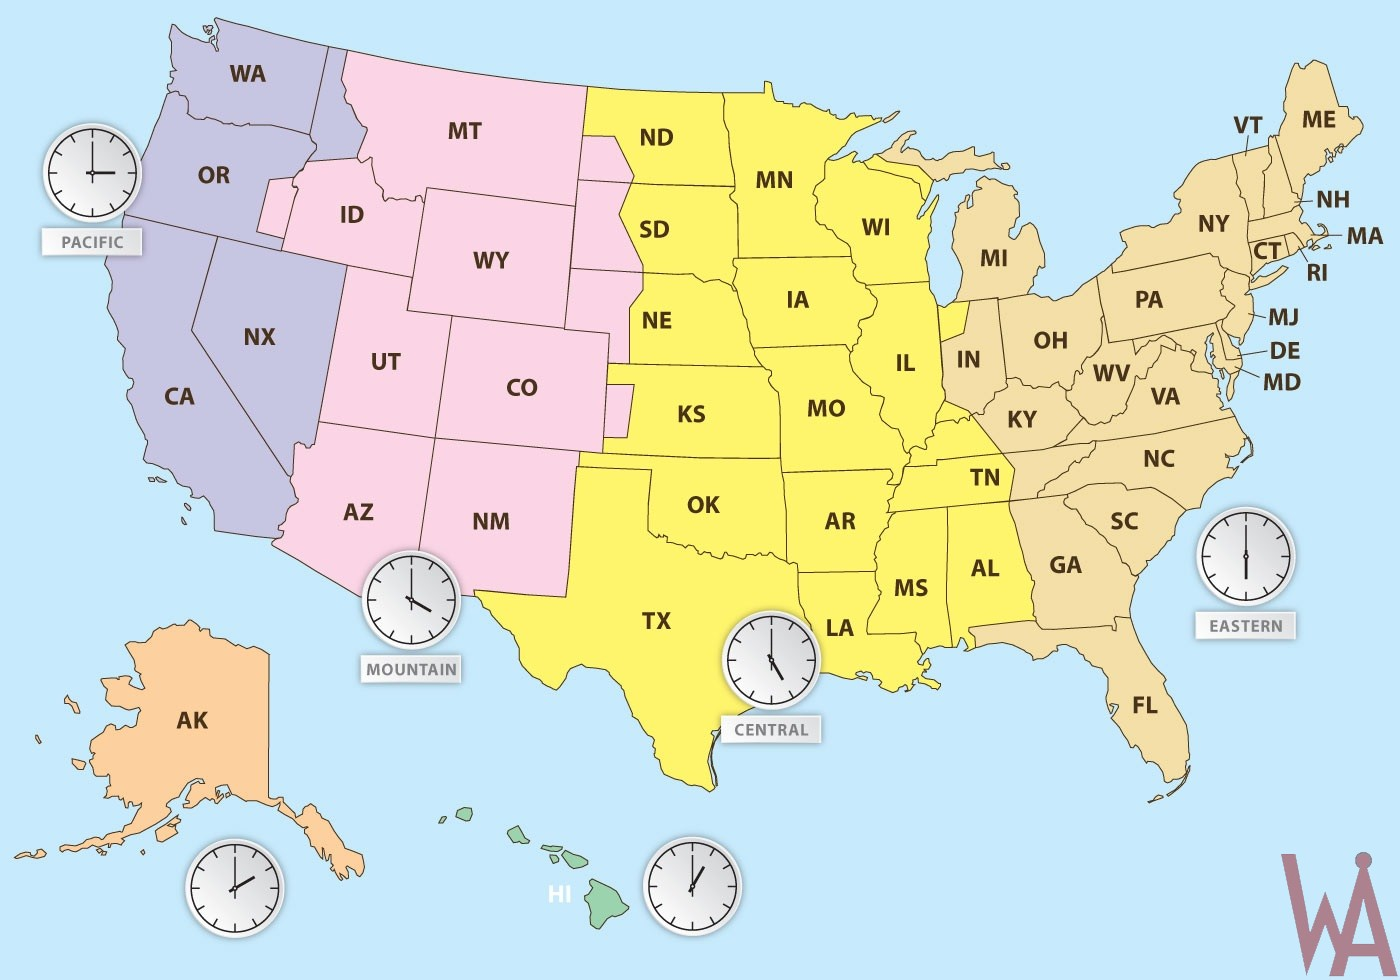 map of the usa states labeled with State Wise Time Zone Map Of The Usa on Asia Map No Labels besides Us Civil War Secession Map S le Us Flash Map States And Territories Civil War Secession War furthermore Royalty Free Stock Photography Tennessee Map Image10334797 together with State Wise Time Zone Map Of The Usa likewise Belgiam Map.